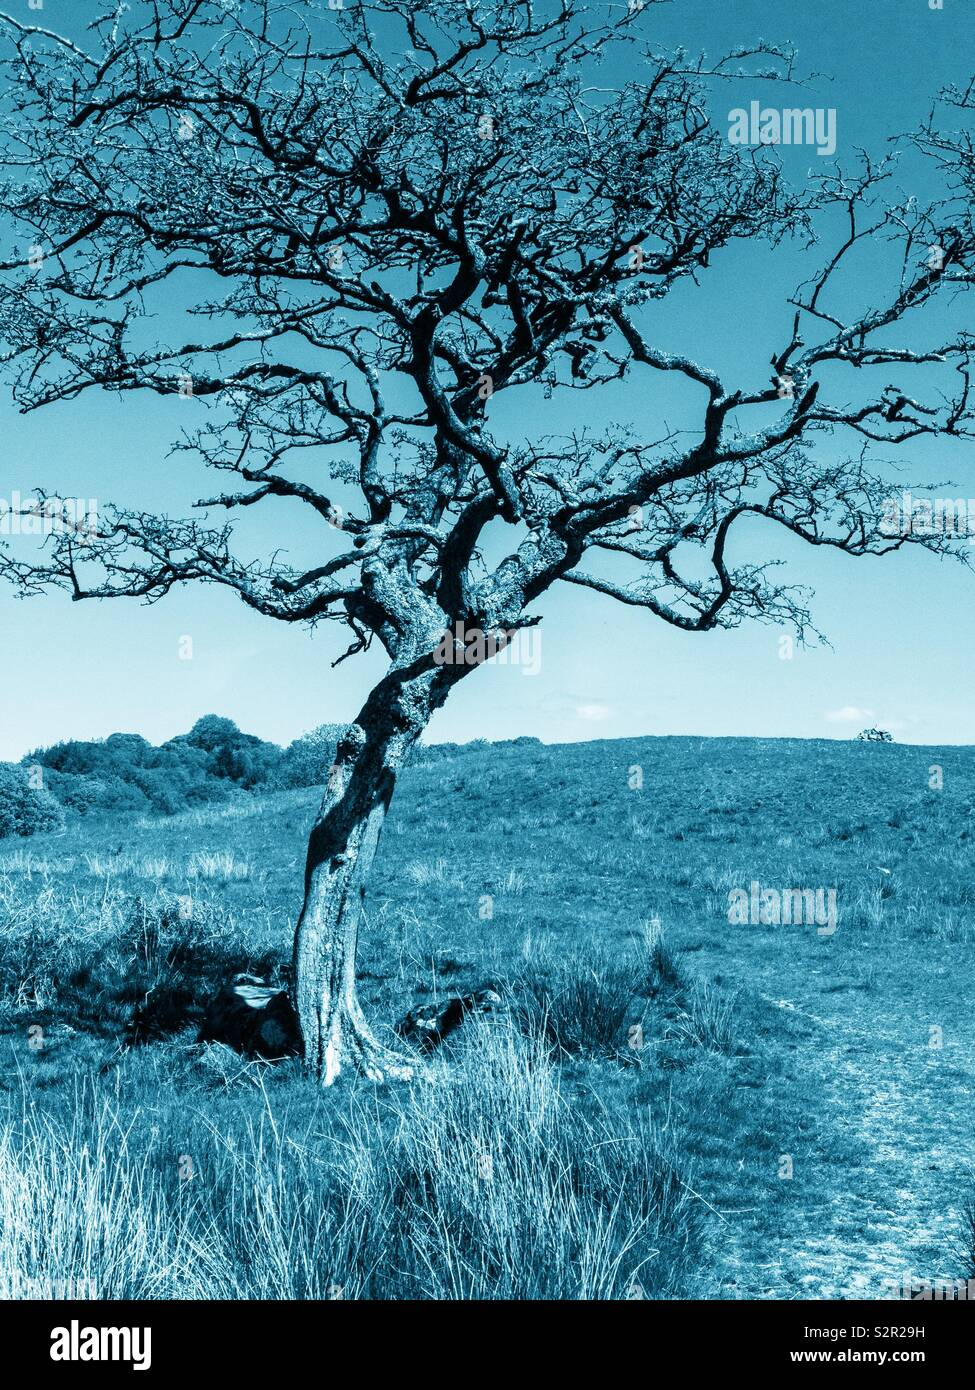 Lone hawthorn tree in winter with cloudless sky. - Stock Image